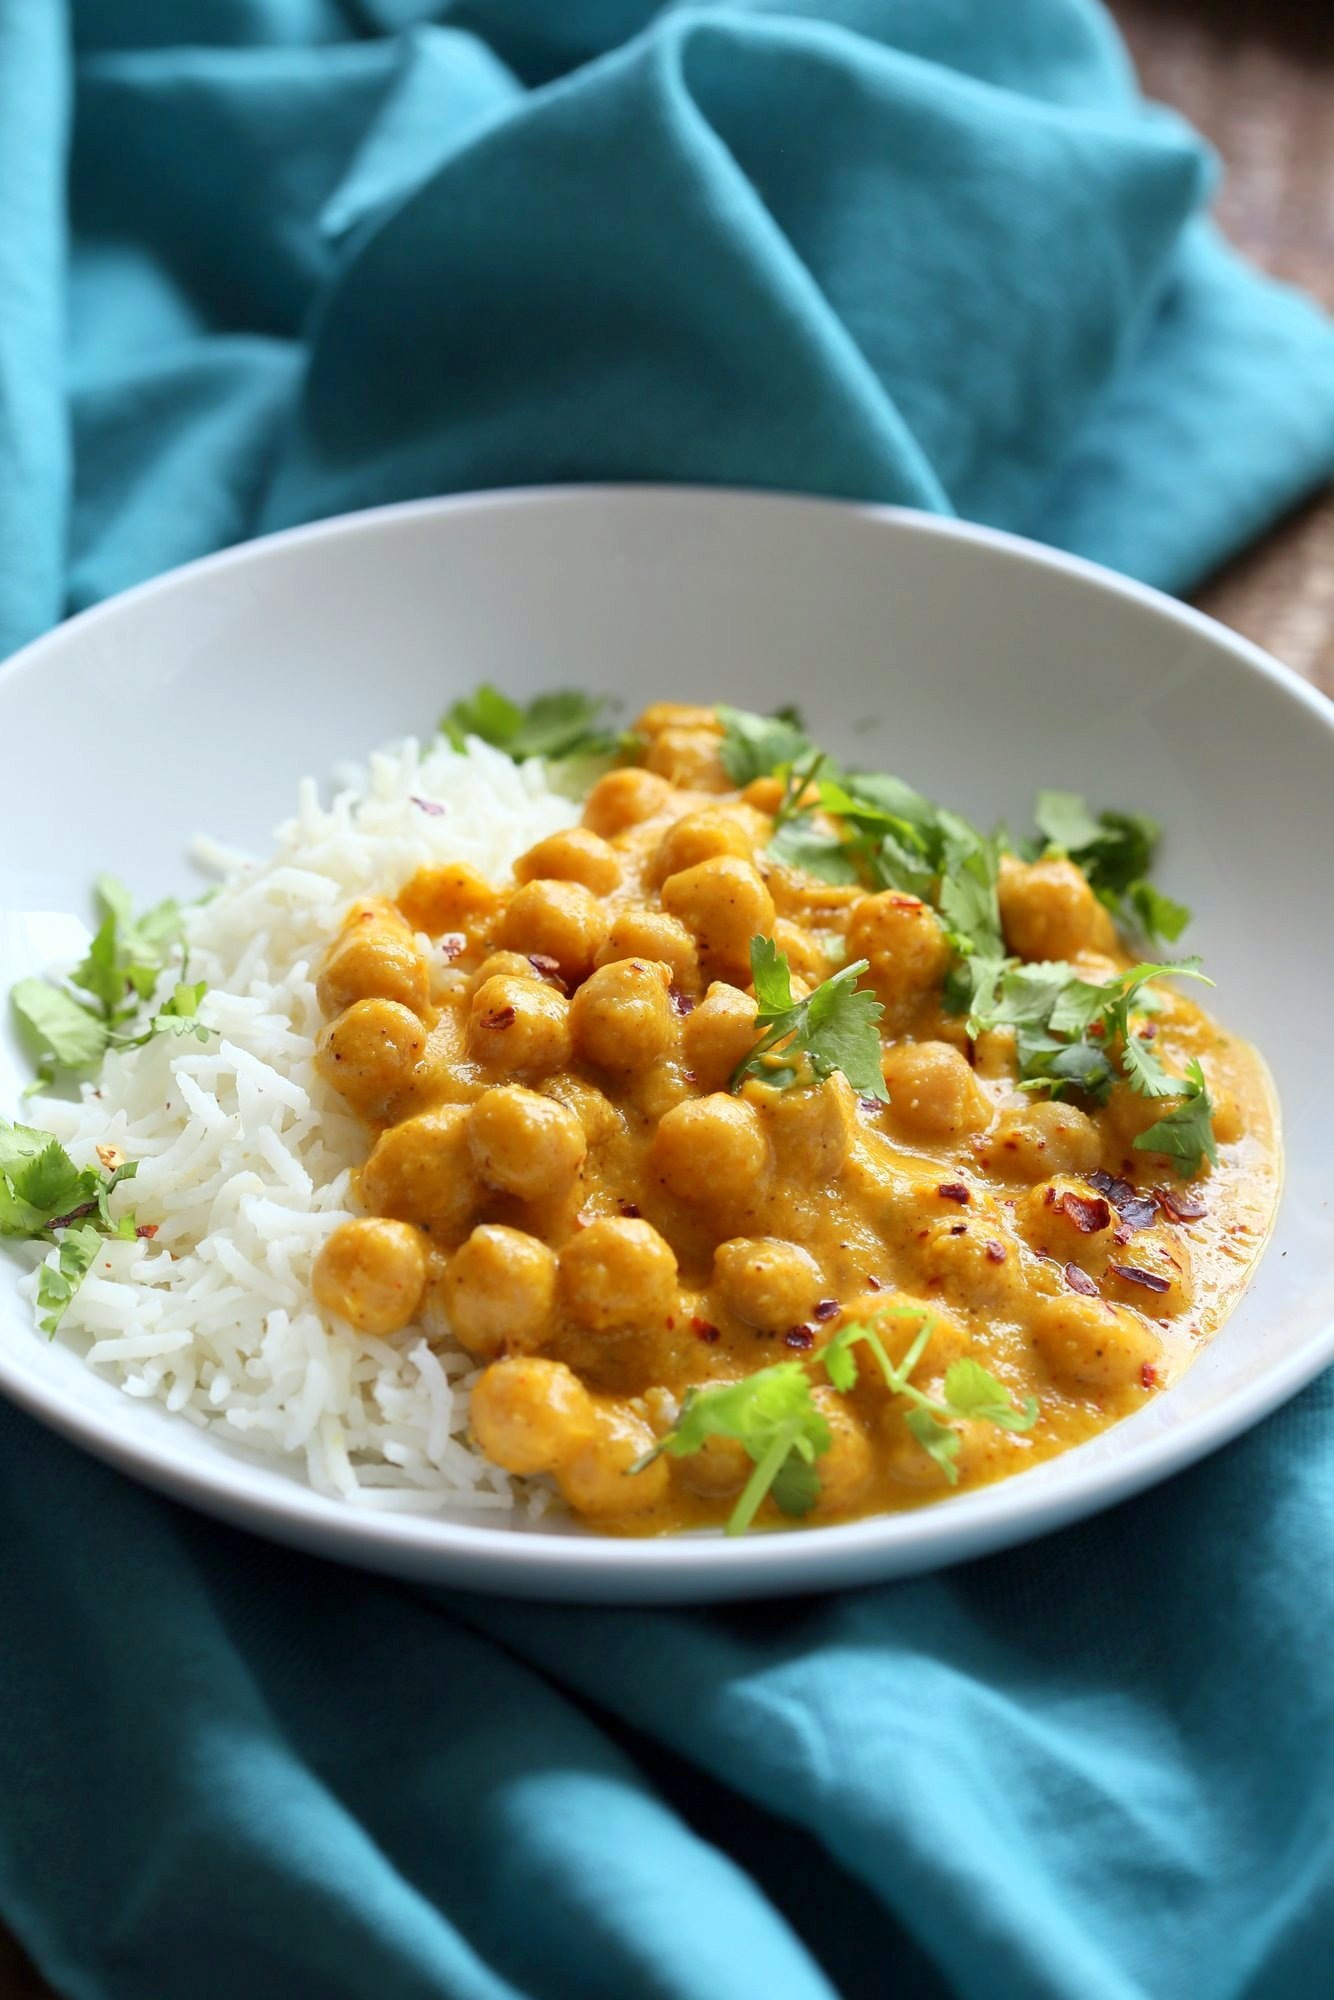 Easy 1 pot Mango Curry Chickpeas. This Mango Curry is creamy, mangoey and perfect when paired with chickpeas, vegetables or baked tofu. Easy and so flavorful. Vegan Gluten-free Soy-free Nut-free Recipe. | VeganRicha.com